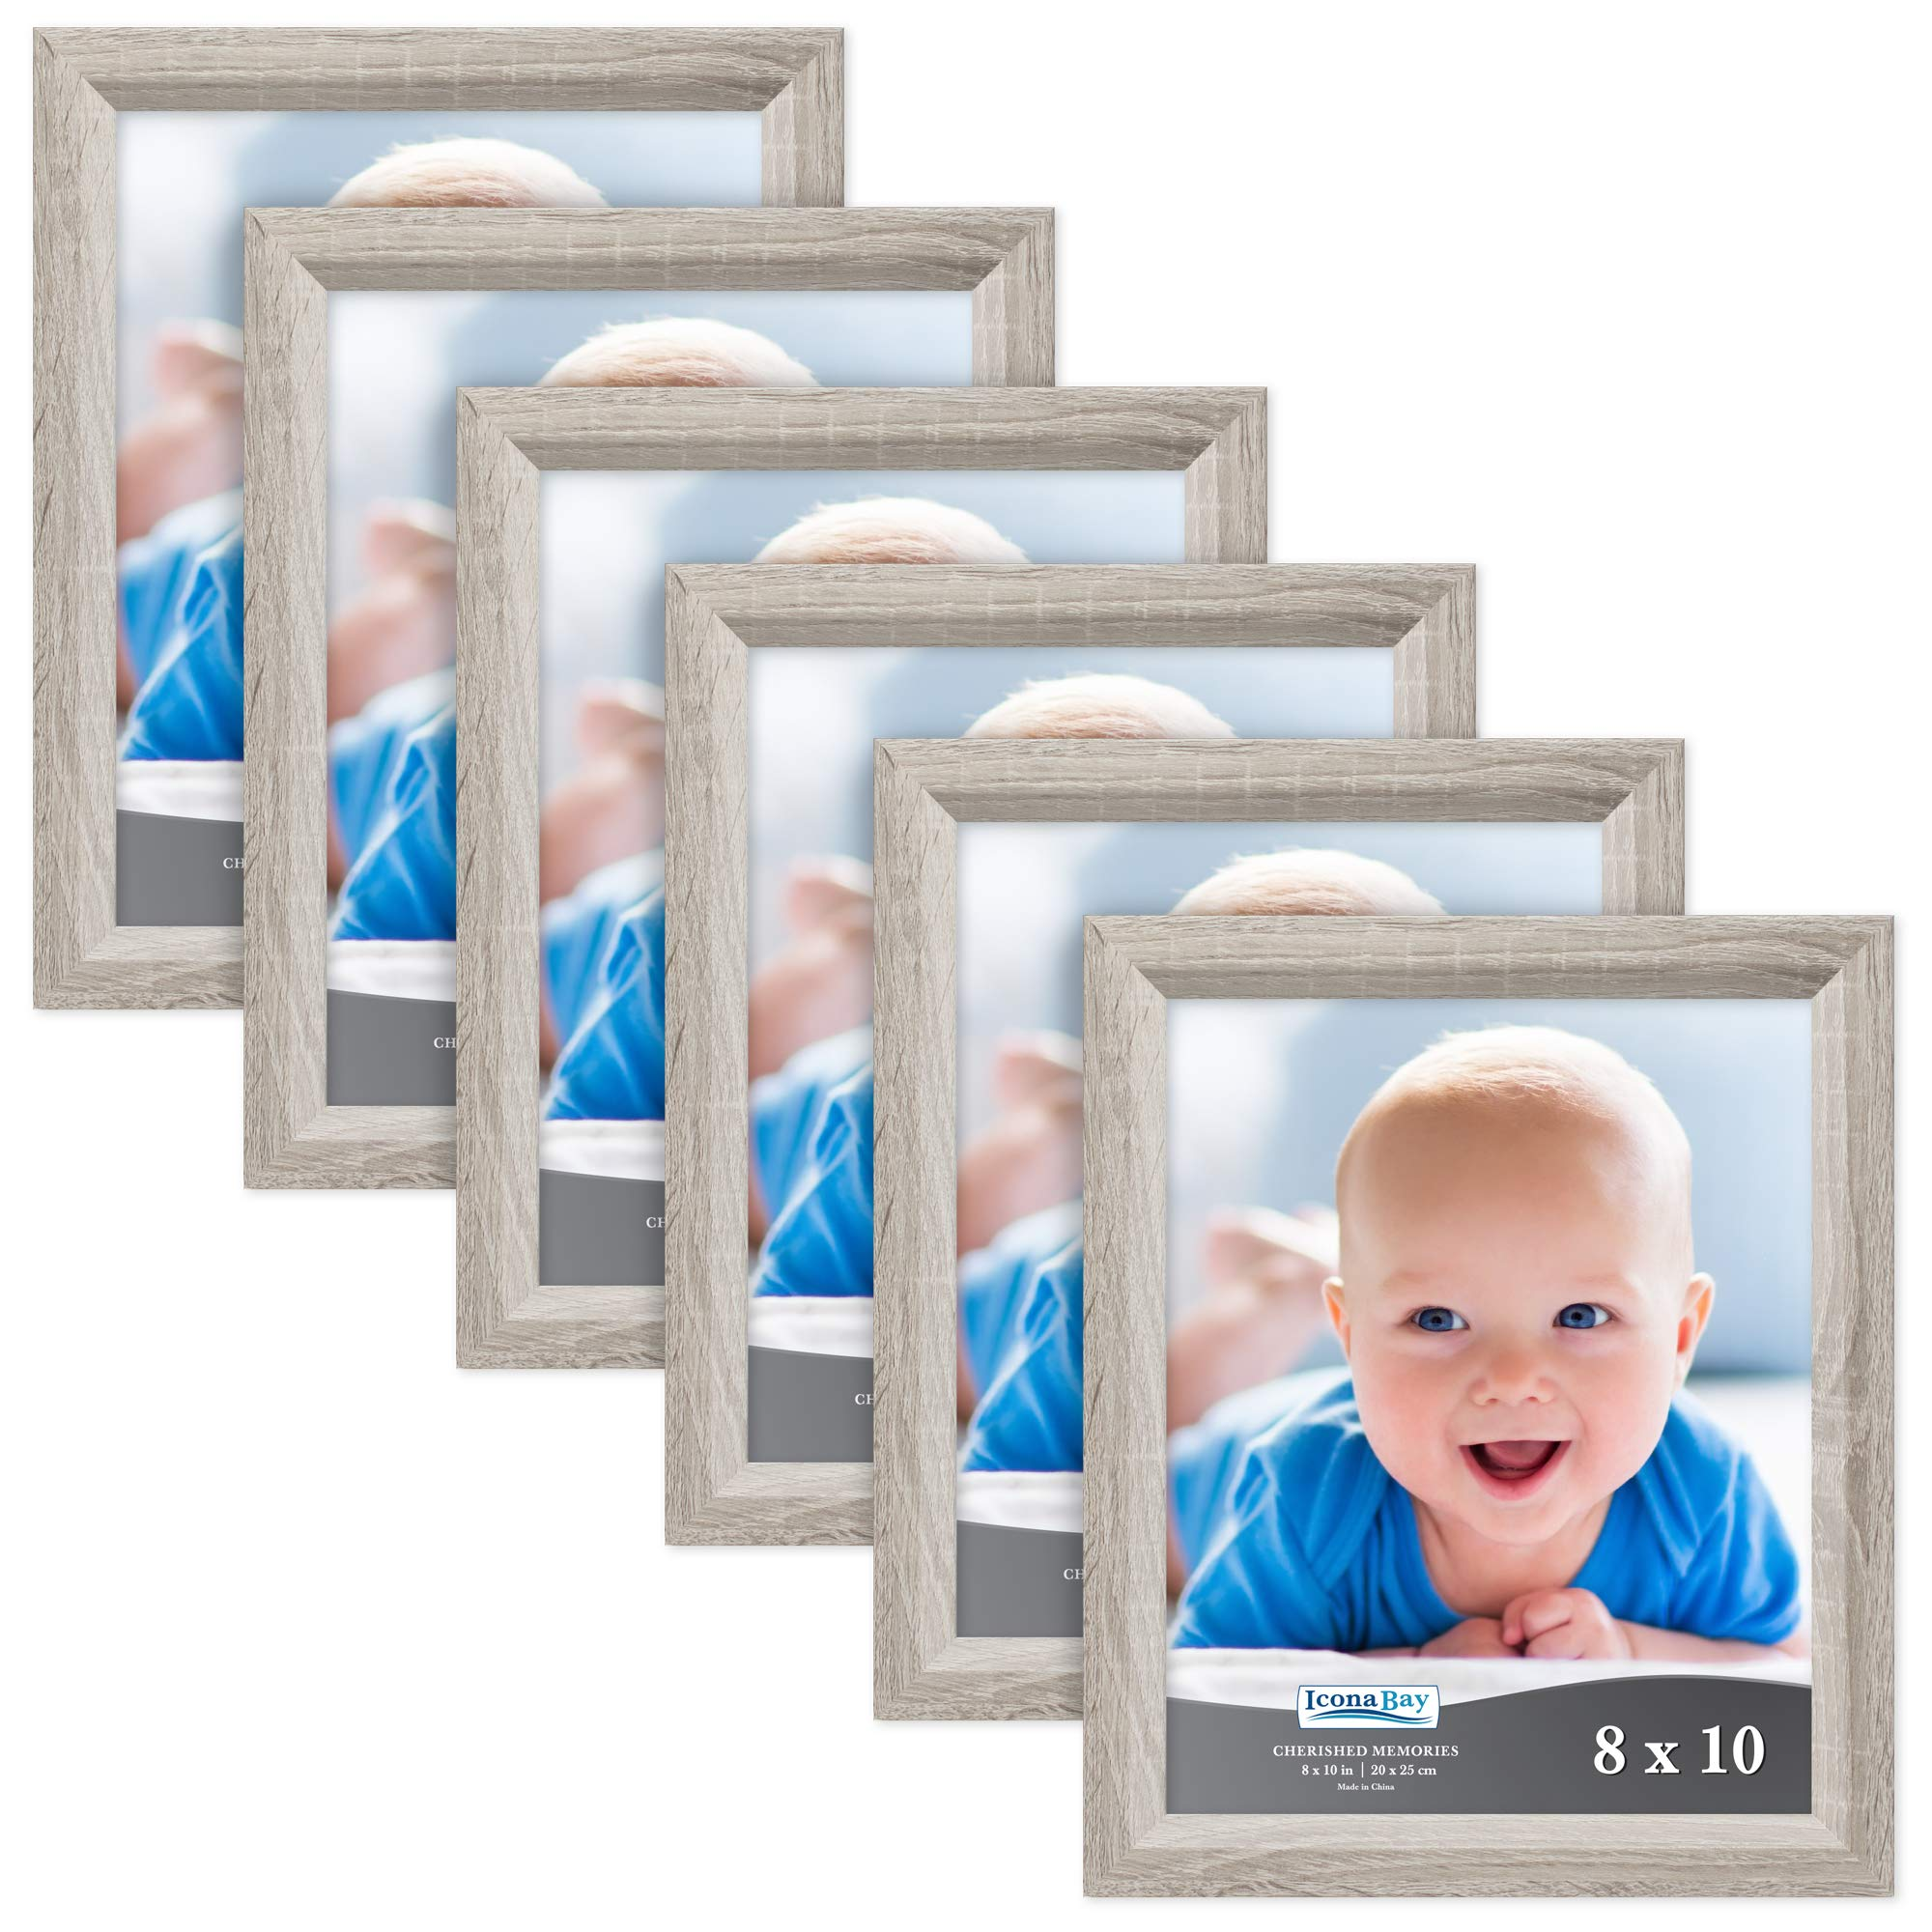 Icona Bay 8x10 Picture Frame (6 Pack, Heritage Gray Wood Finish), Black Photo Frame 8 x 10, Composite Wood Frame for Walls or Tables, Set of 6 Cherished Memories Collection